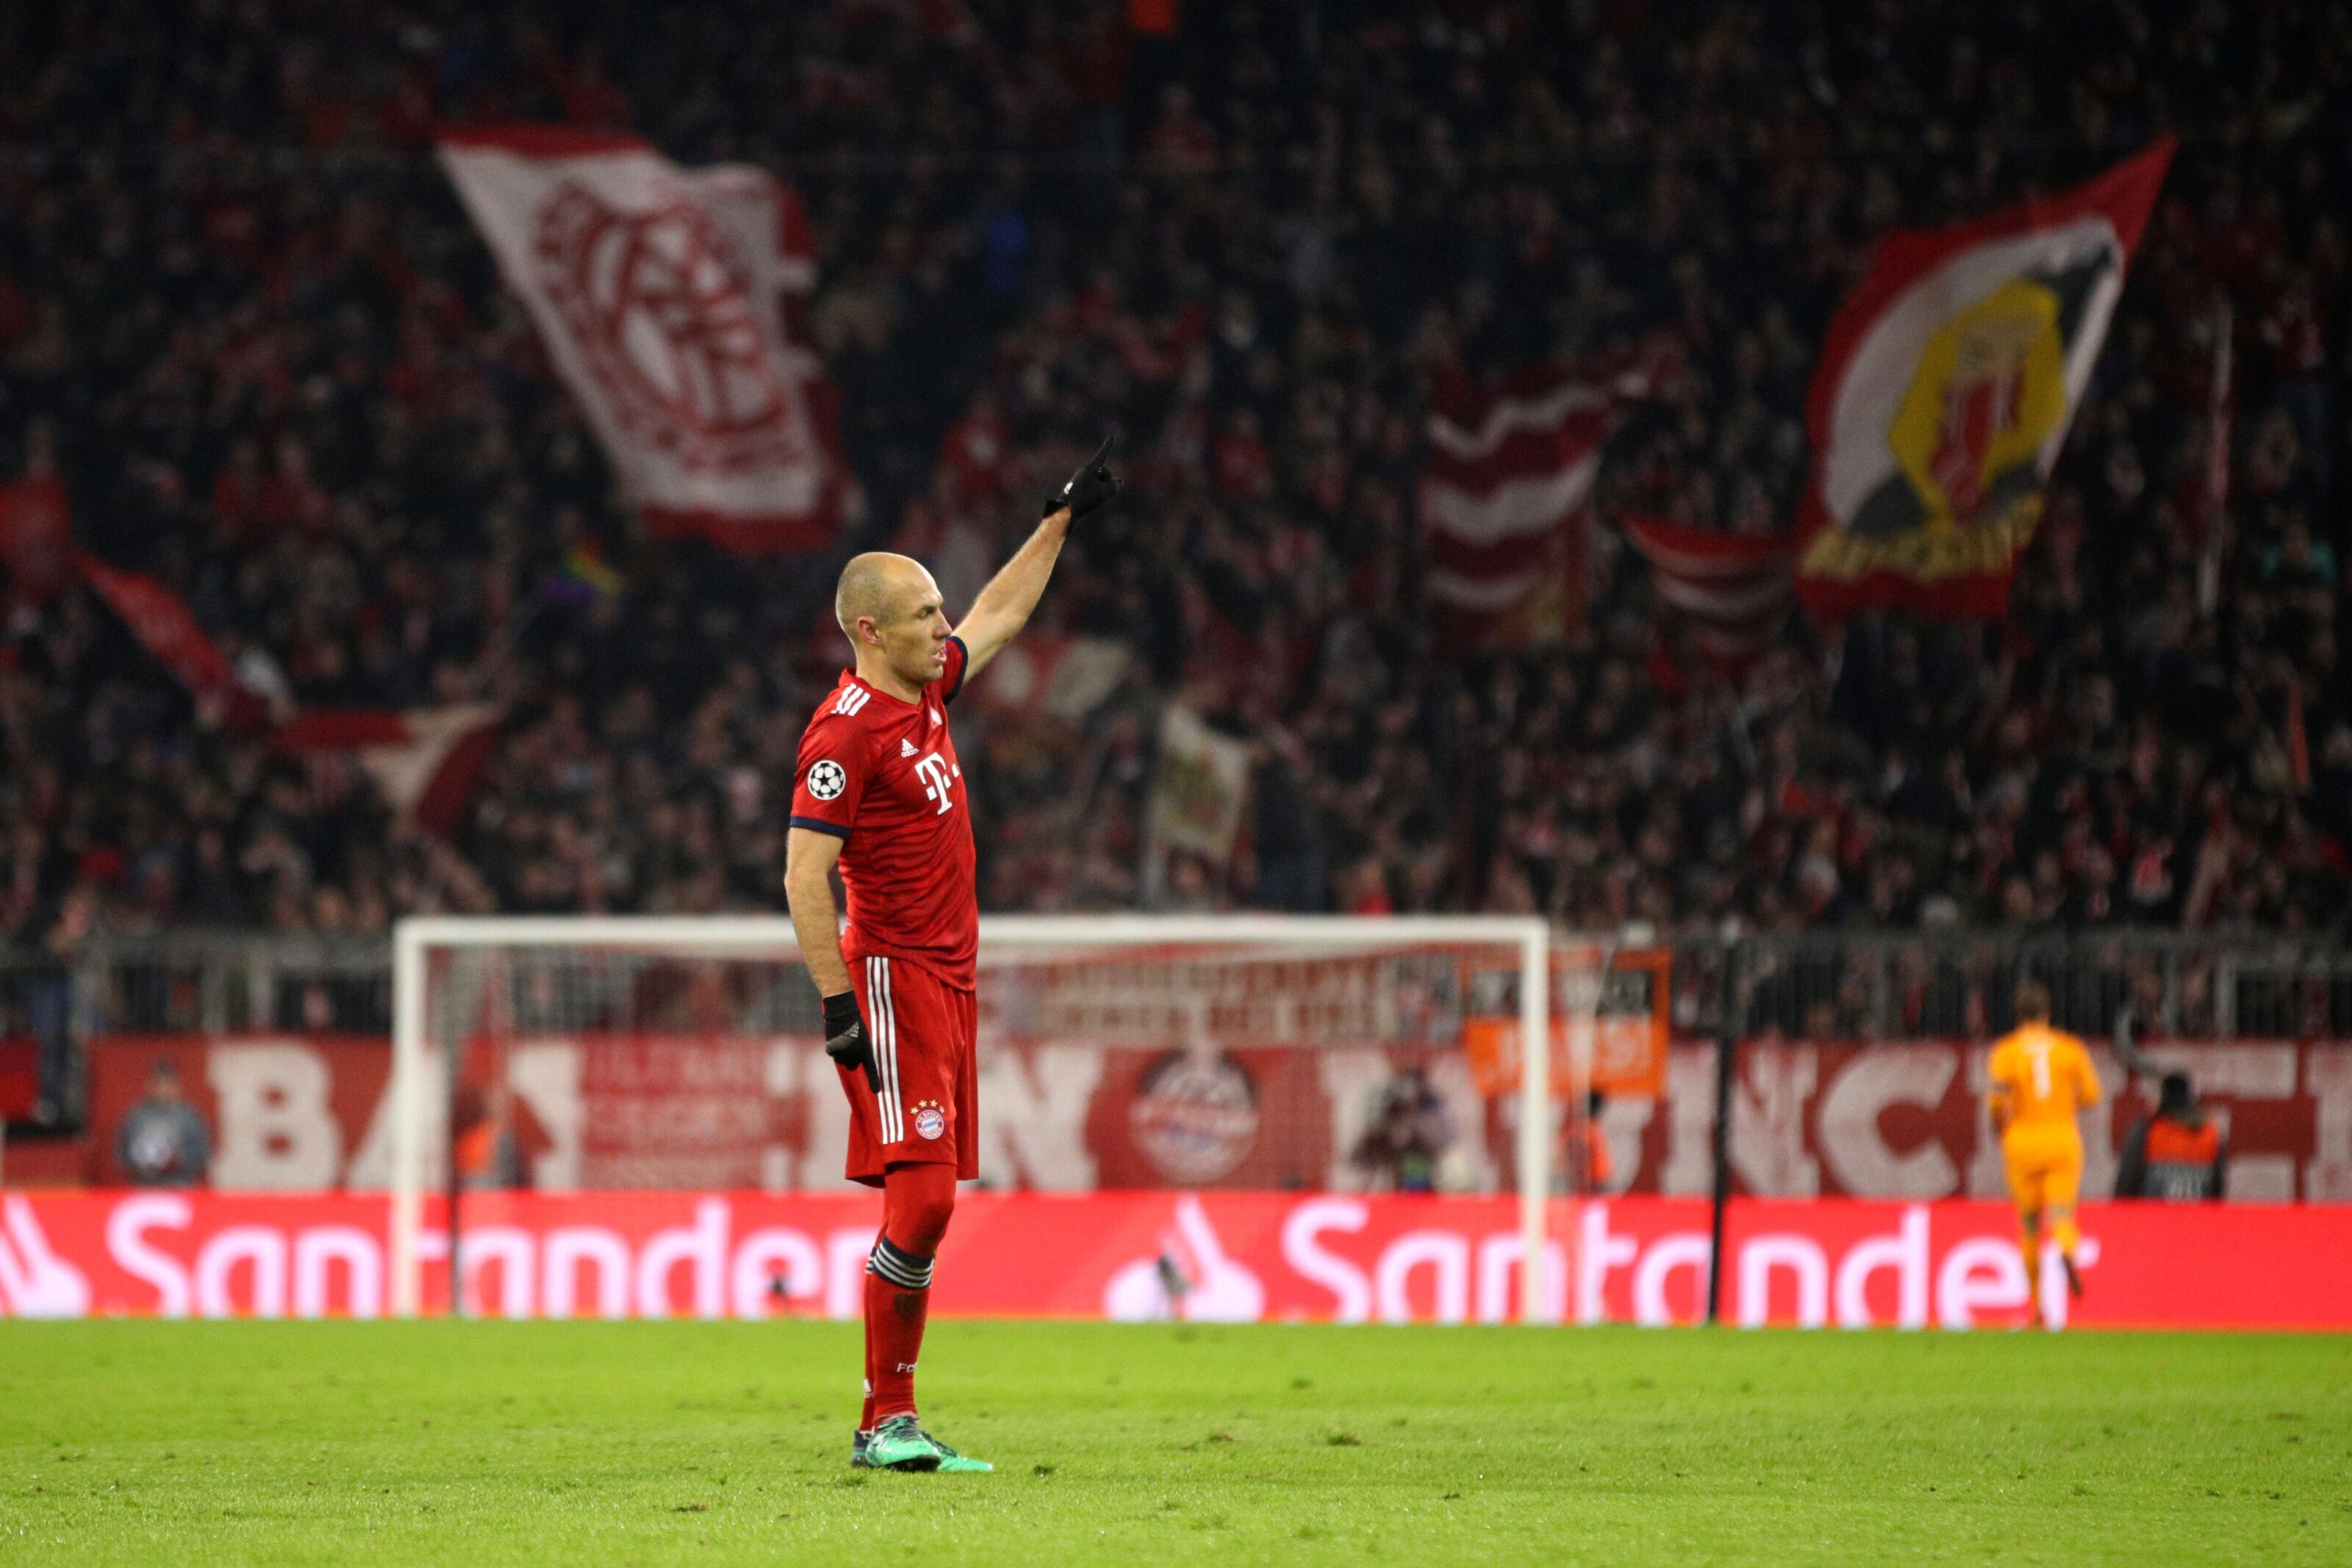 How likely is it that Leicester City will sign Arjen Robben?